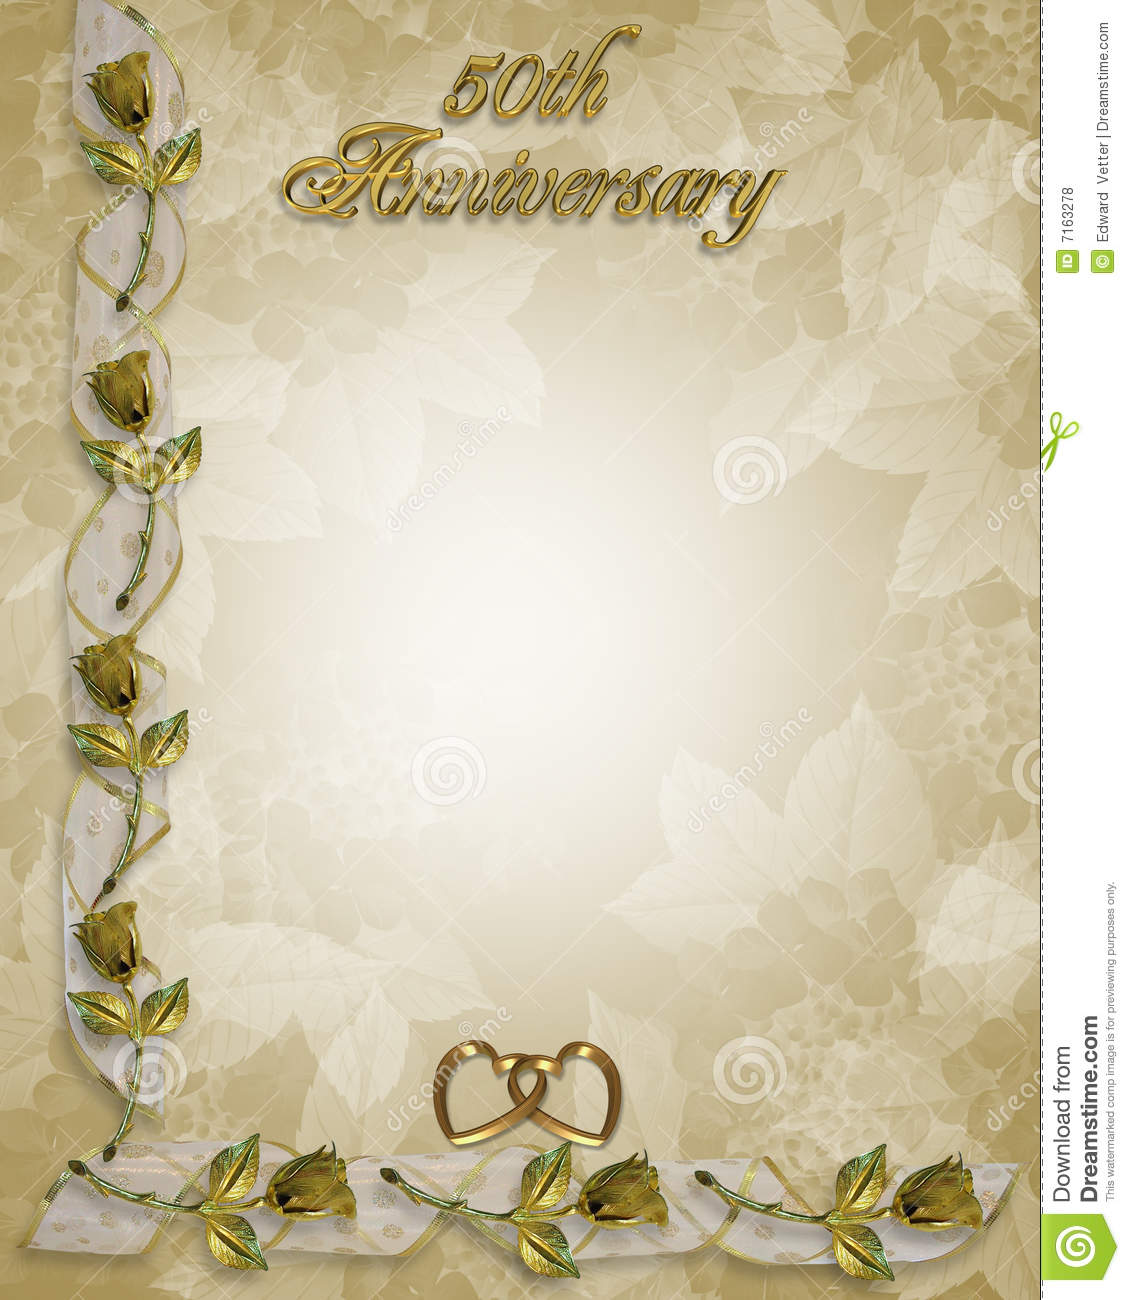 50th Anniversary Border Roses Stock Illustration Illustration Of